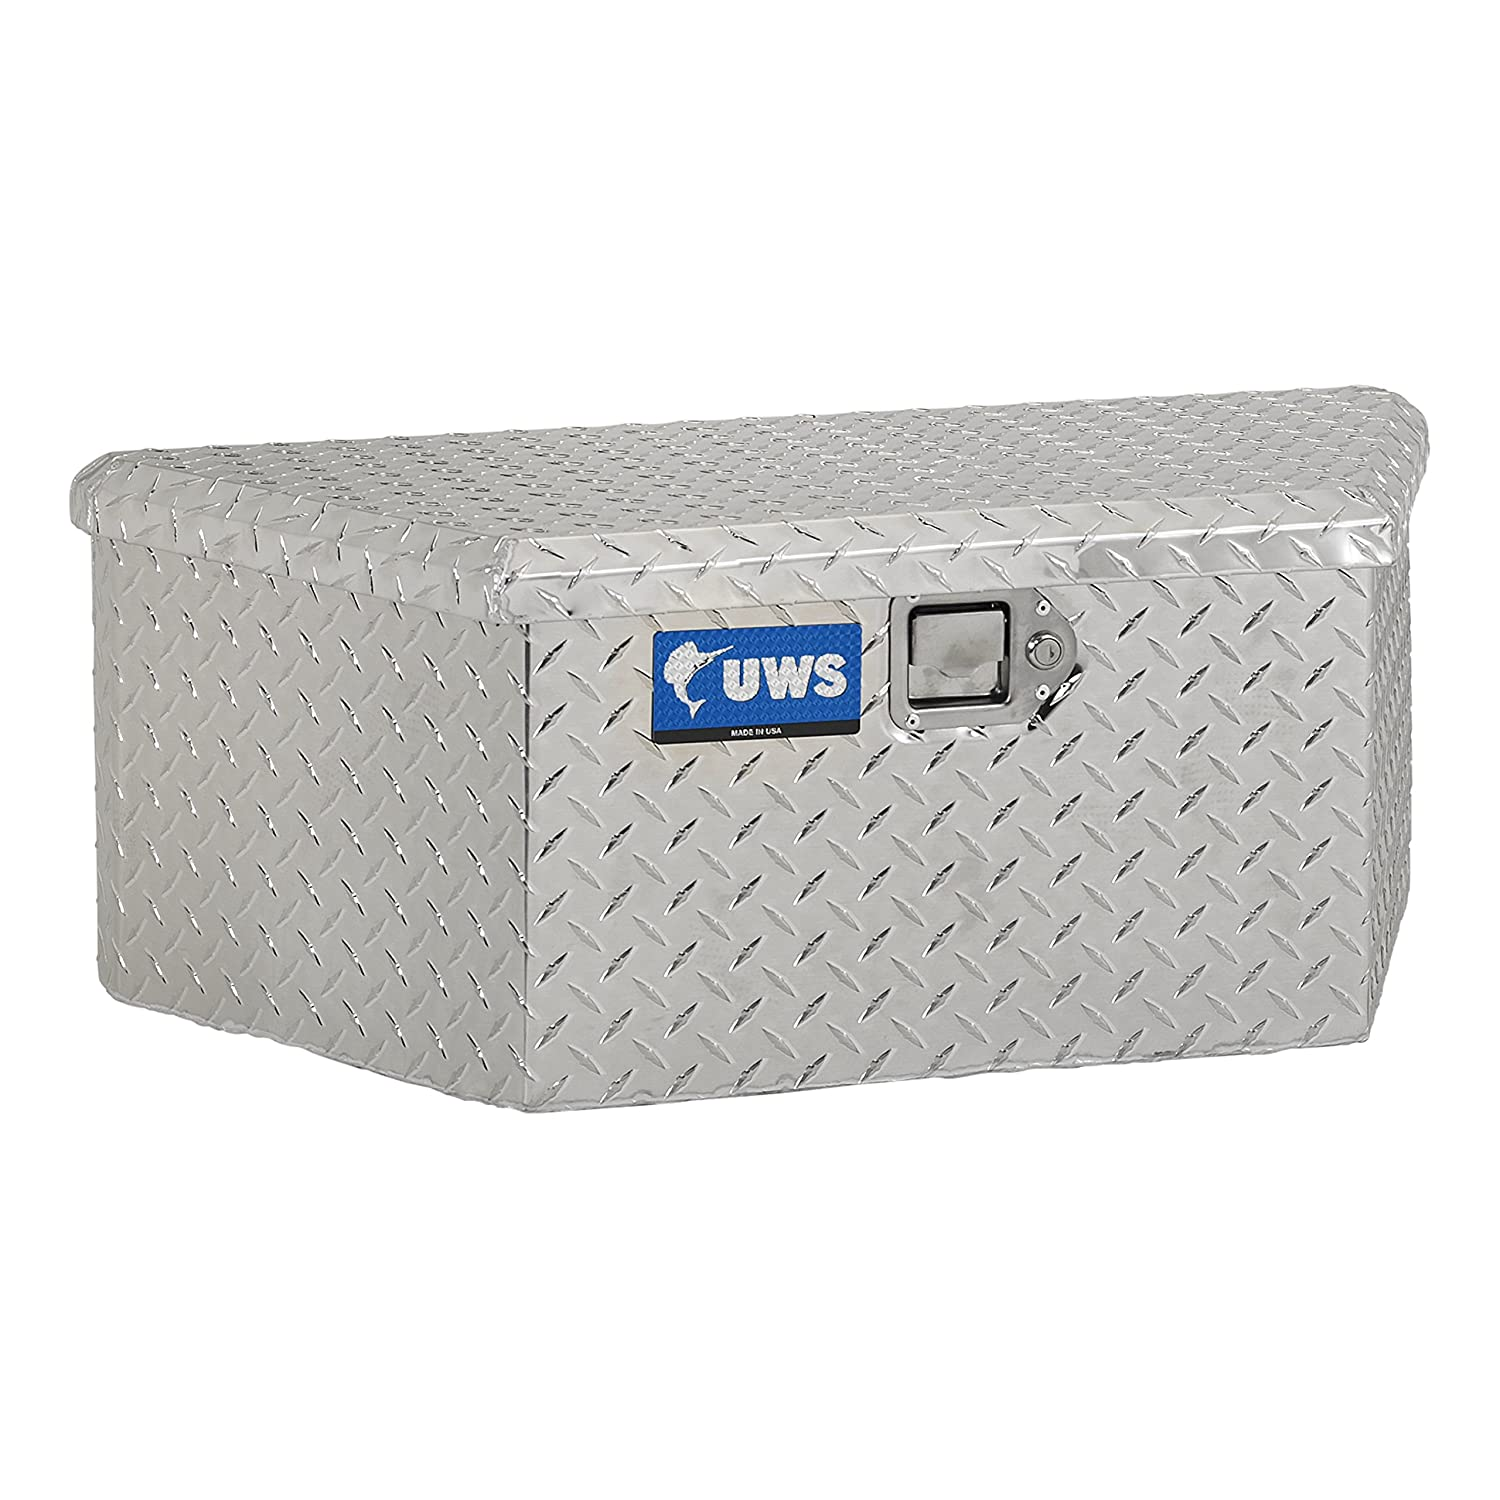 UWS TBV-34-LP 34 Low Profile Trailer Box with Beveled Insulated Lid